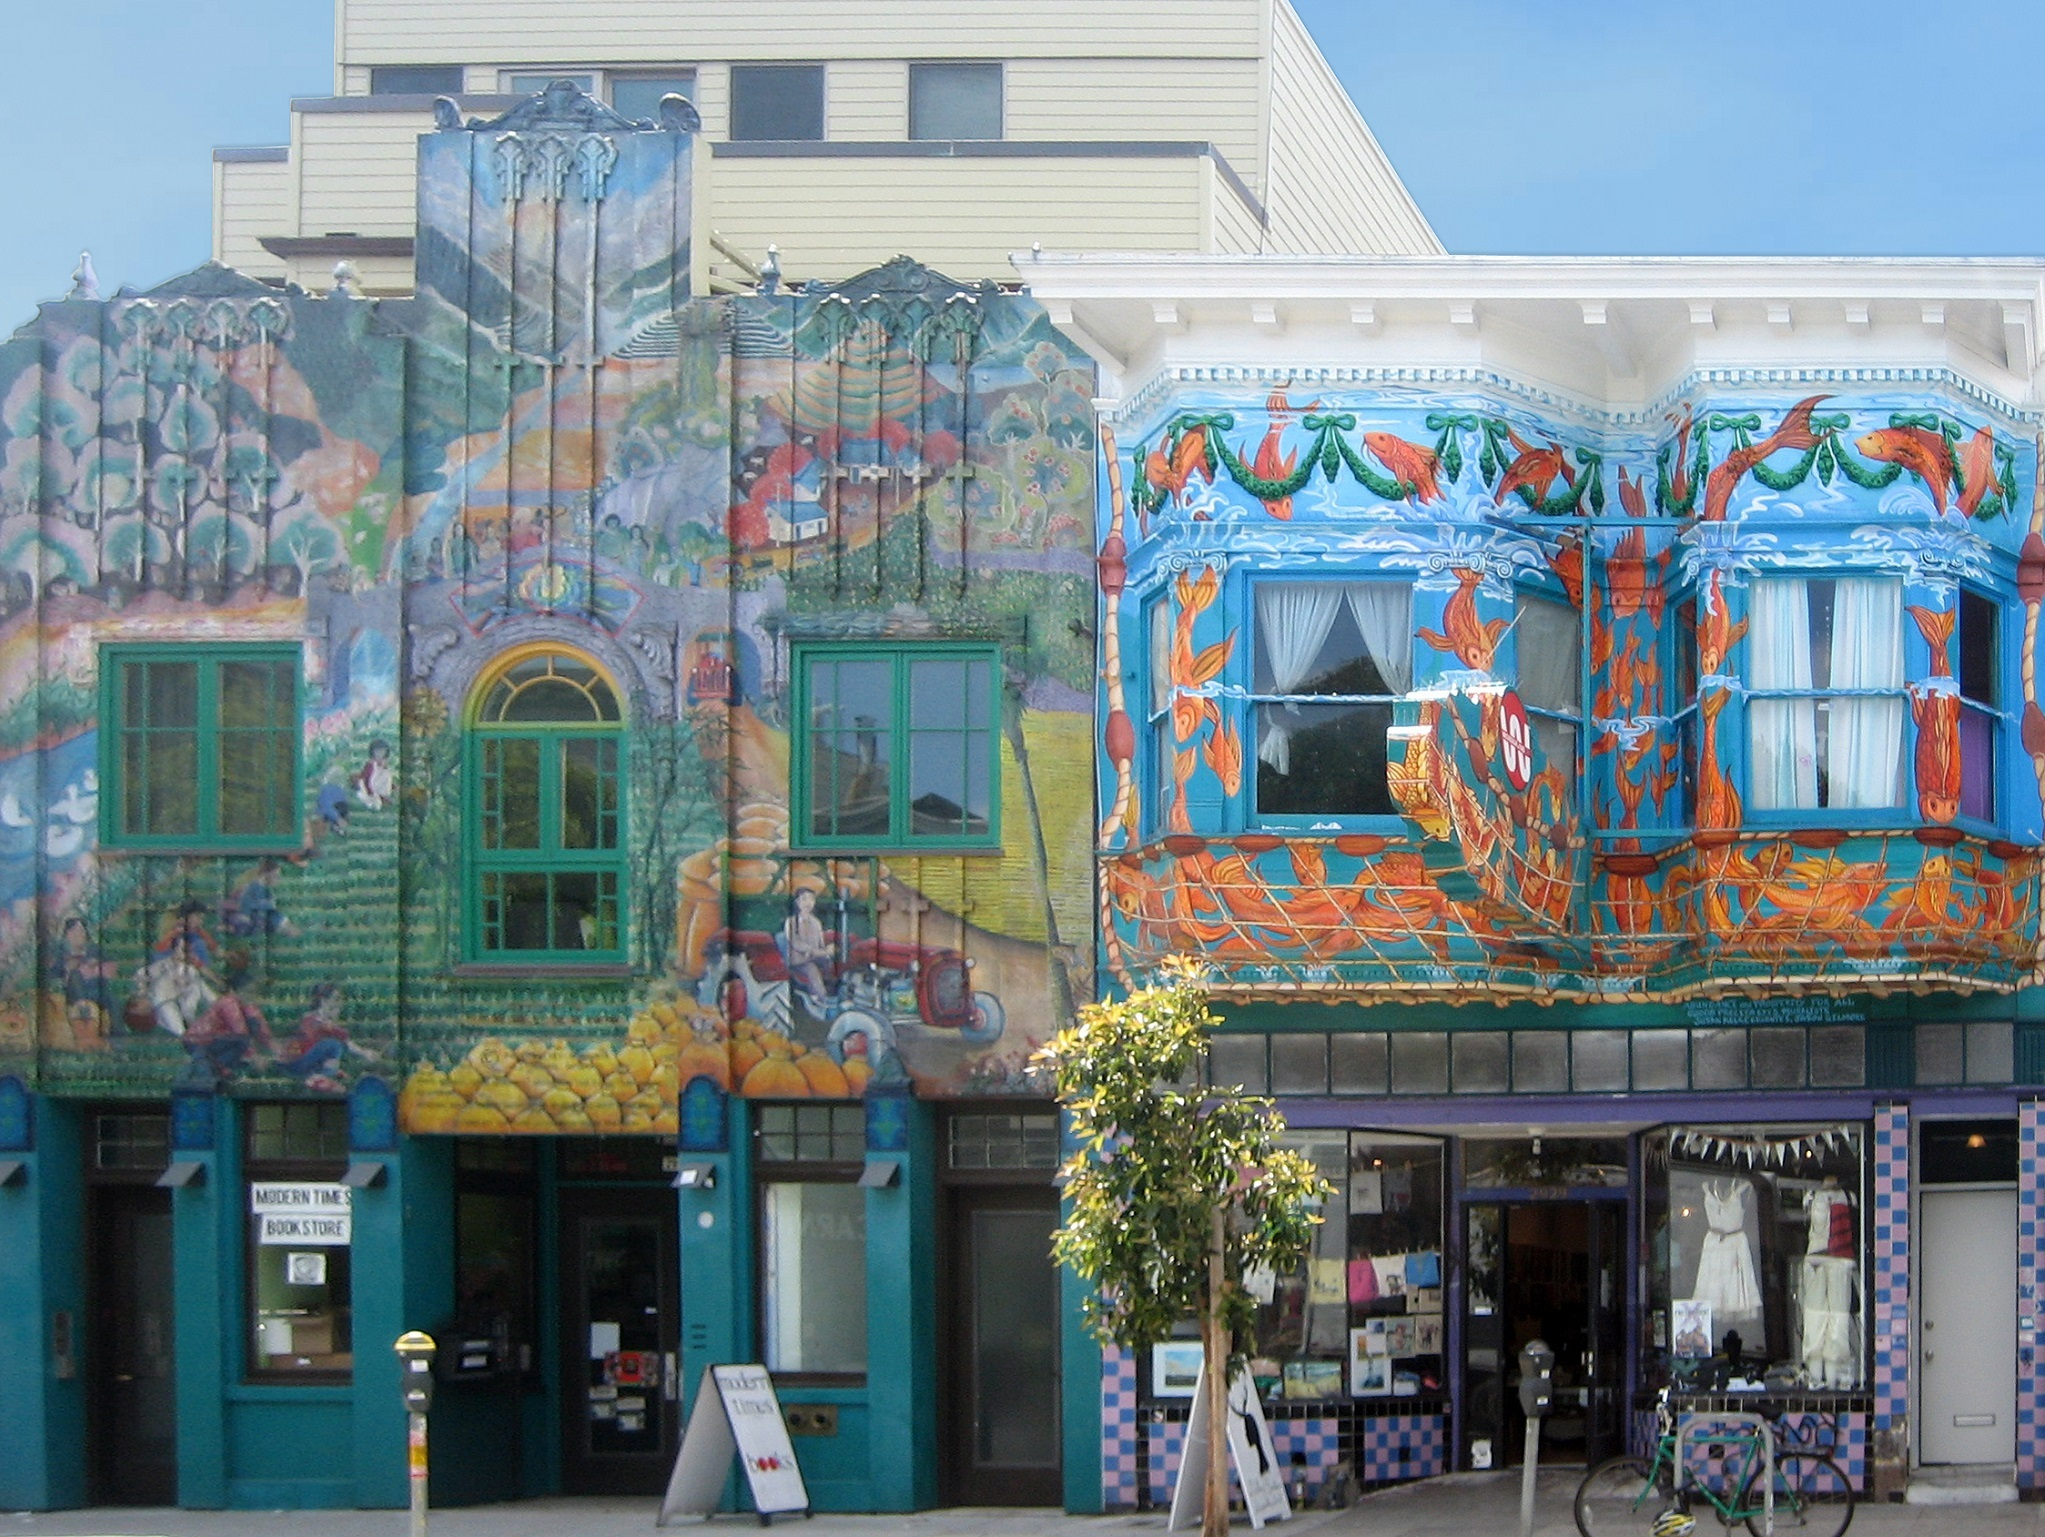 Two colorful murals on the side of a city building